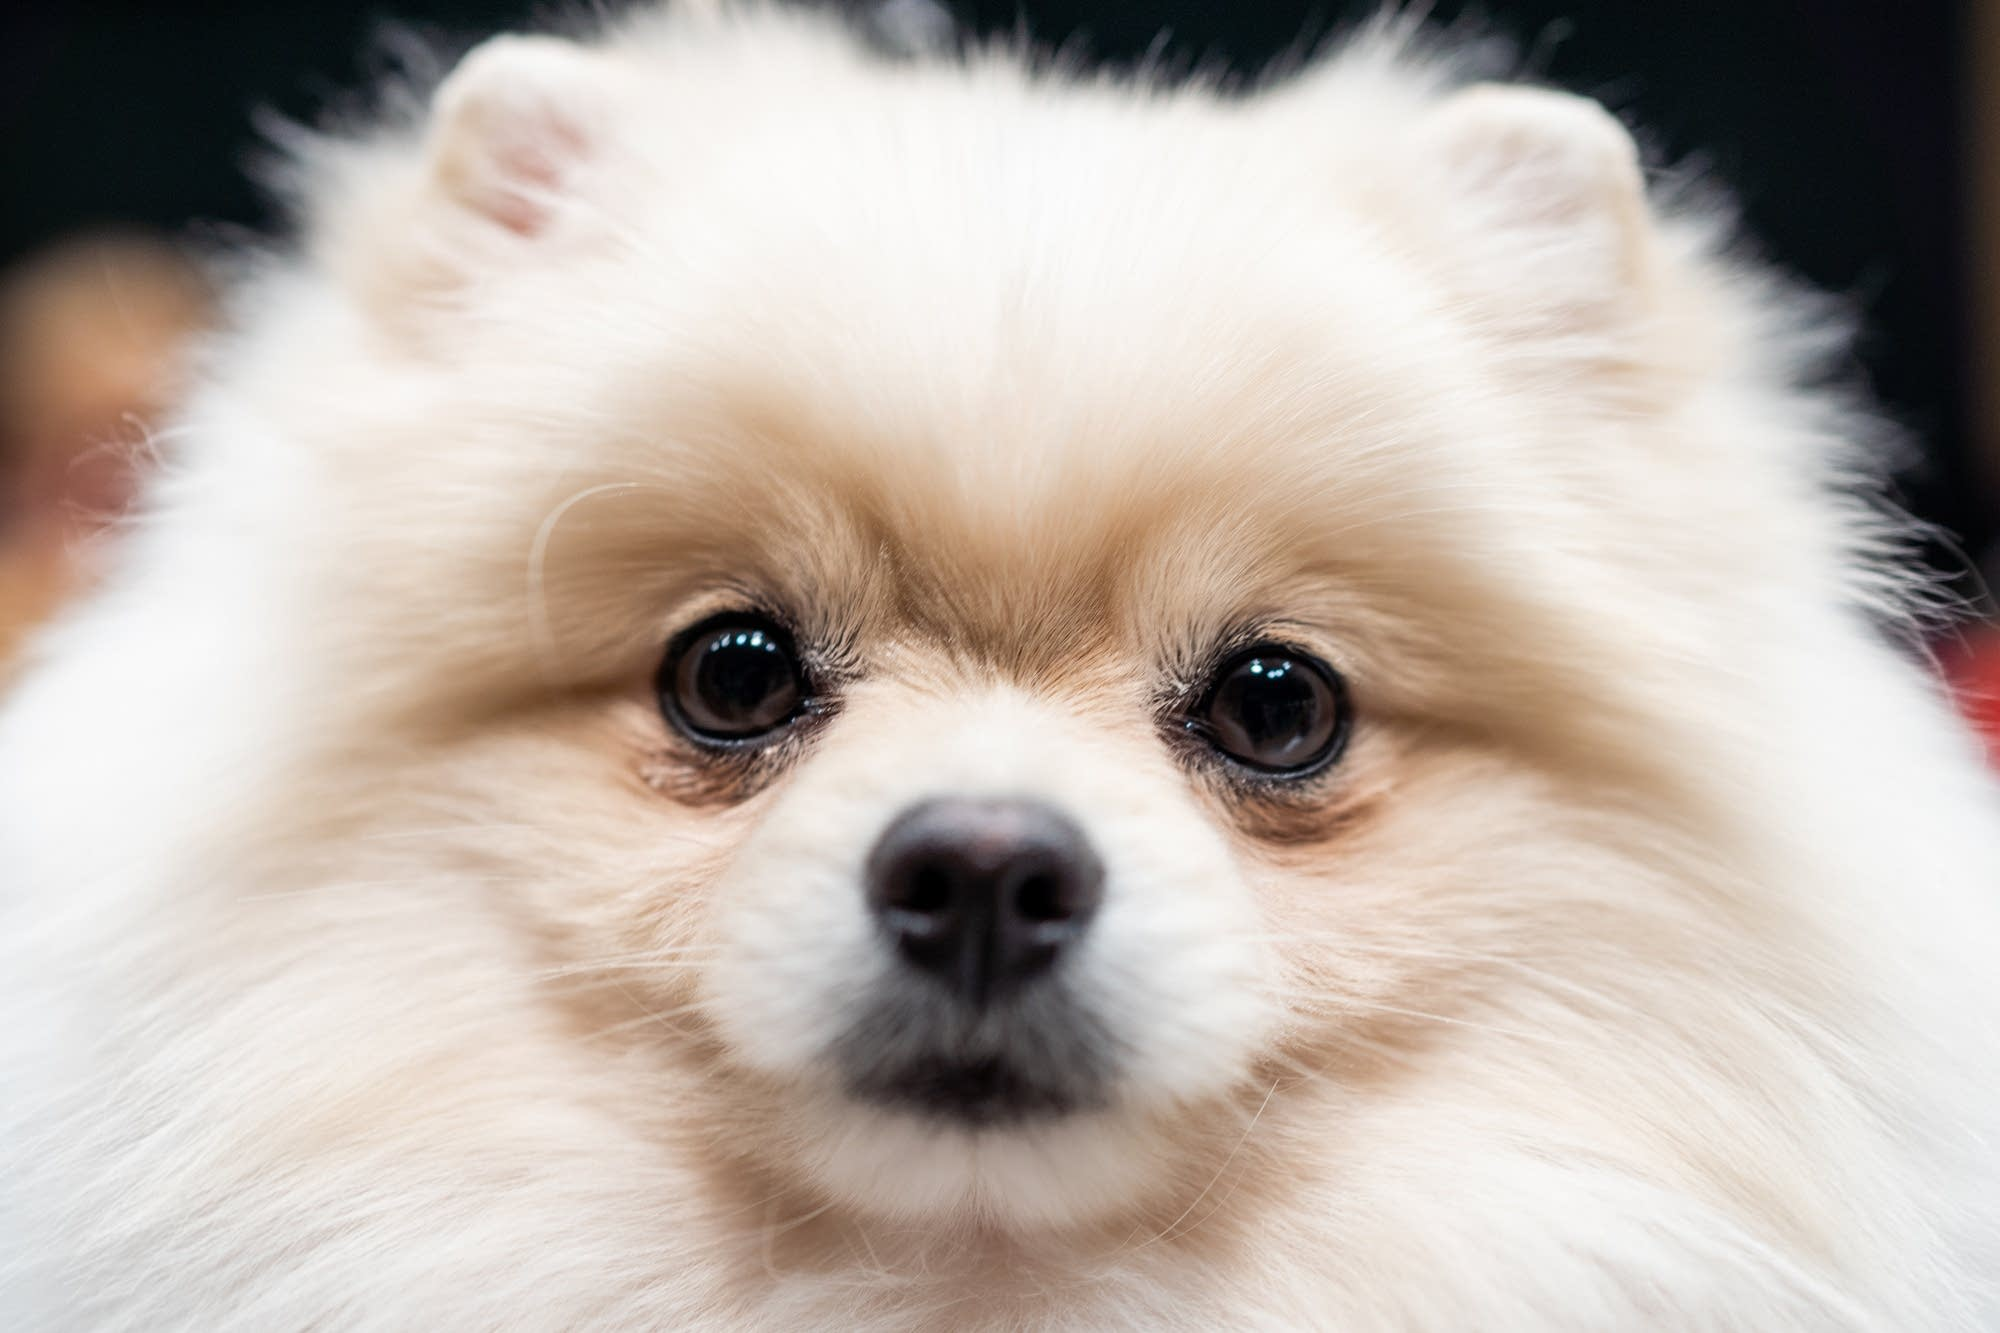 Lakota, a pomeranian, looks at the camera.